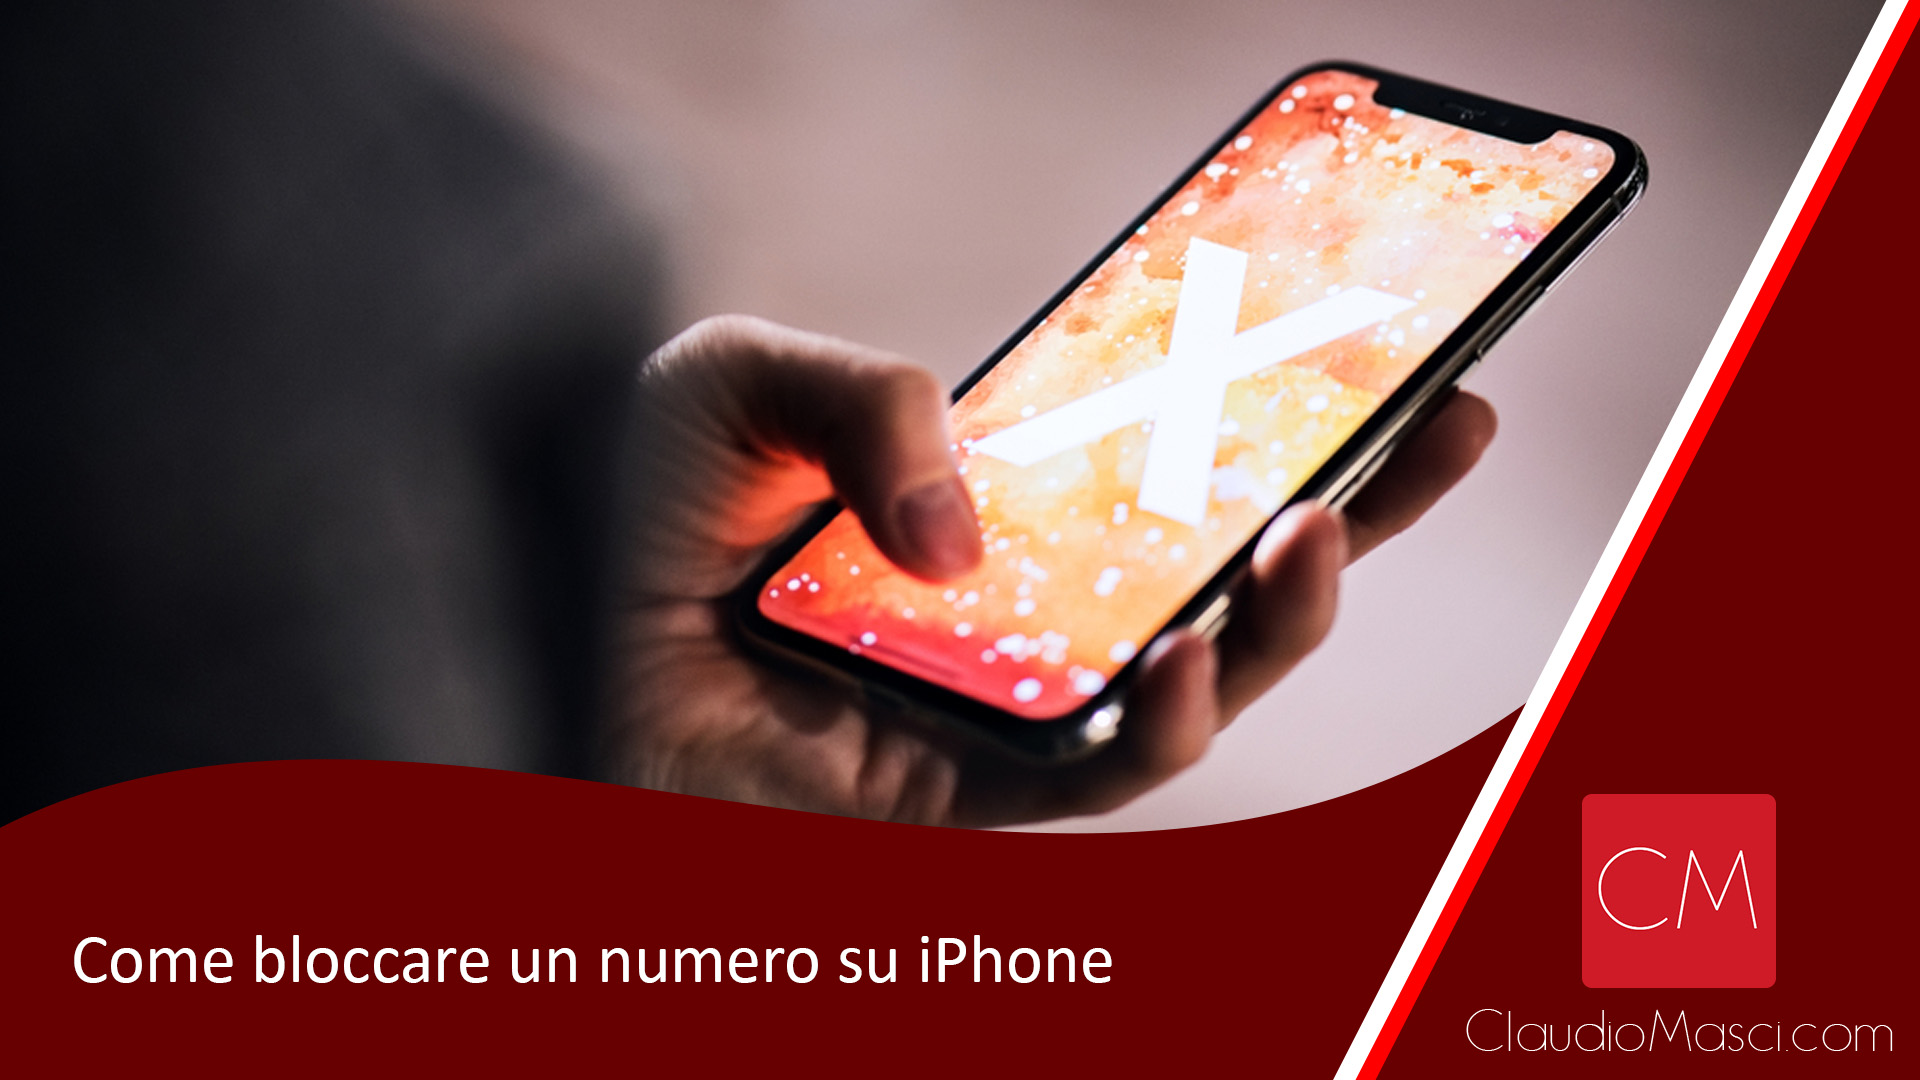 Come bloccare un numero su iPhone